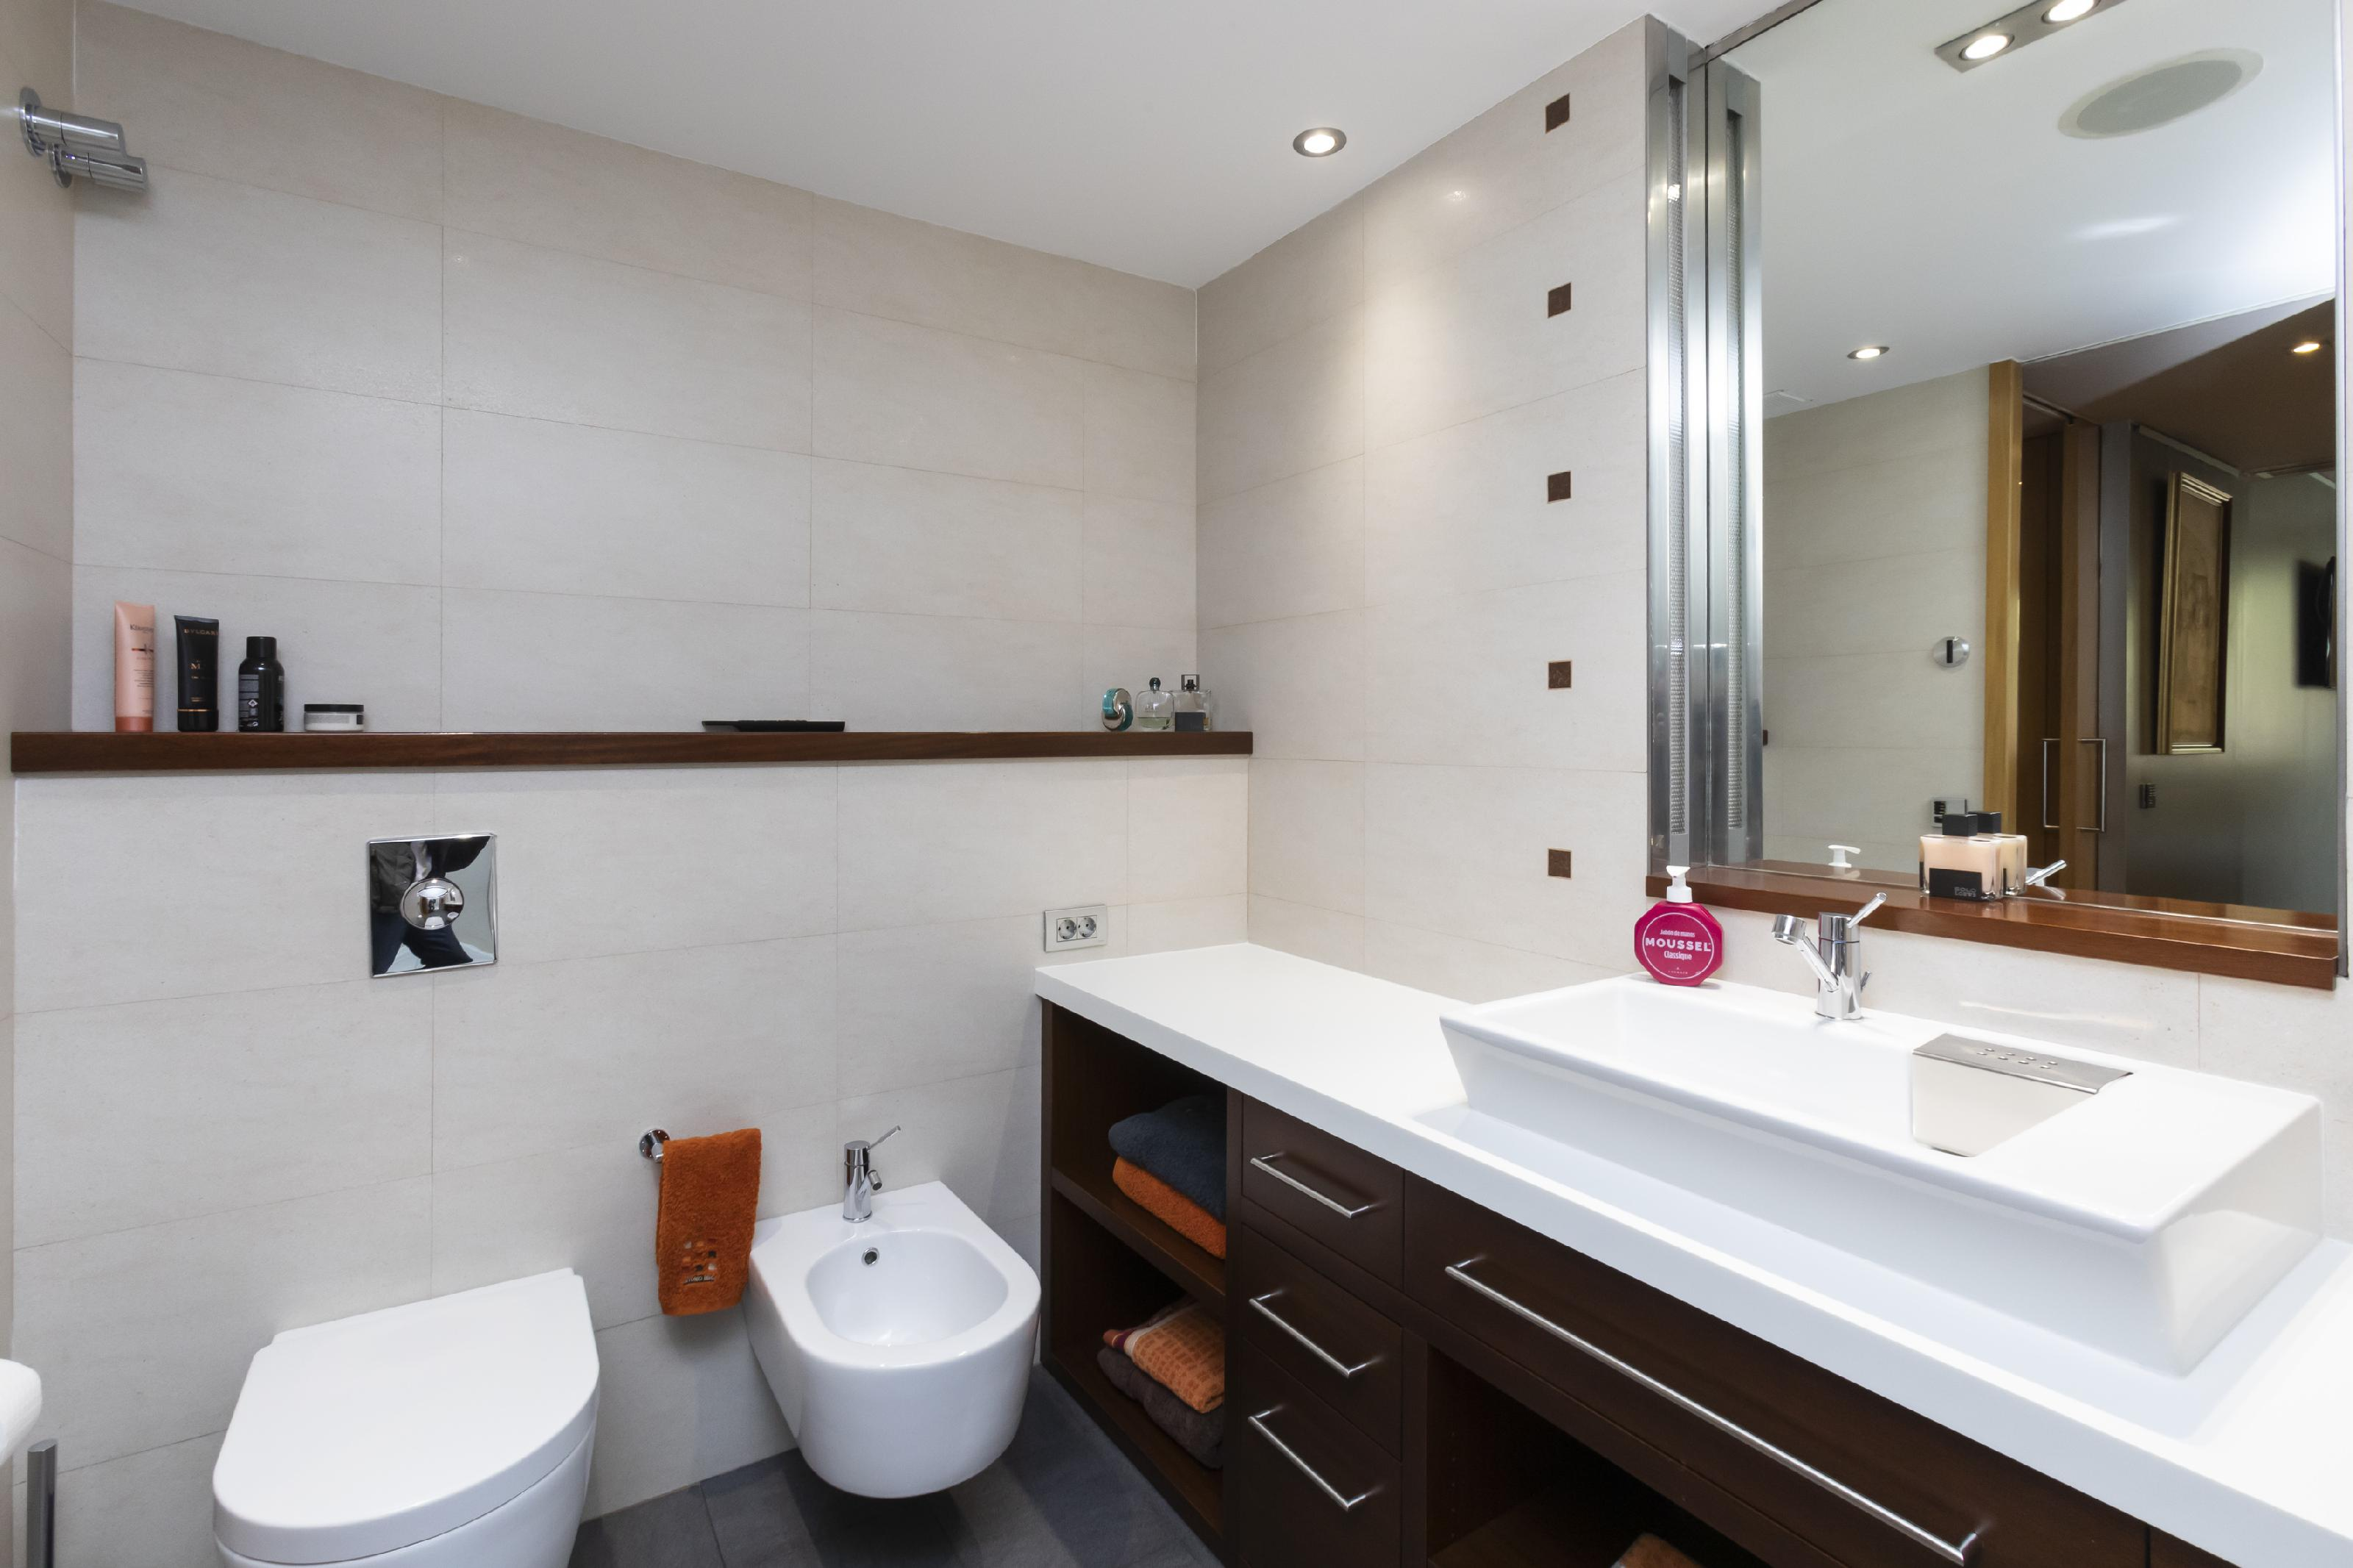 247020 Flat for sale in Les Corts, Les Corts 25